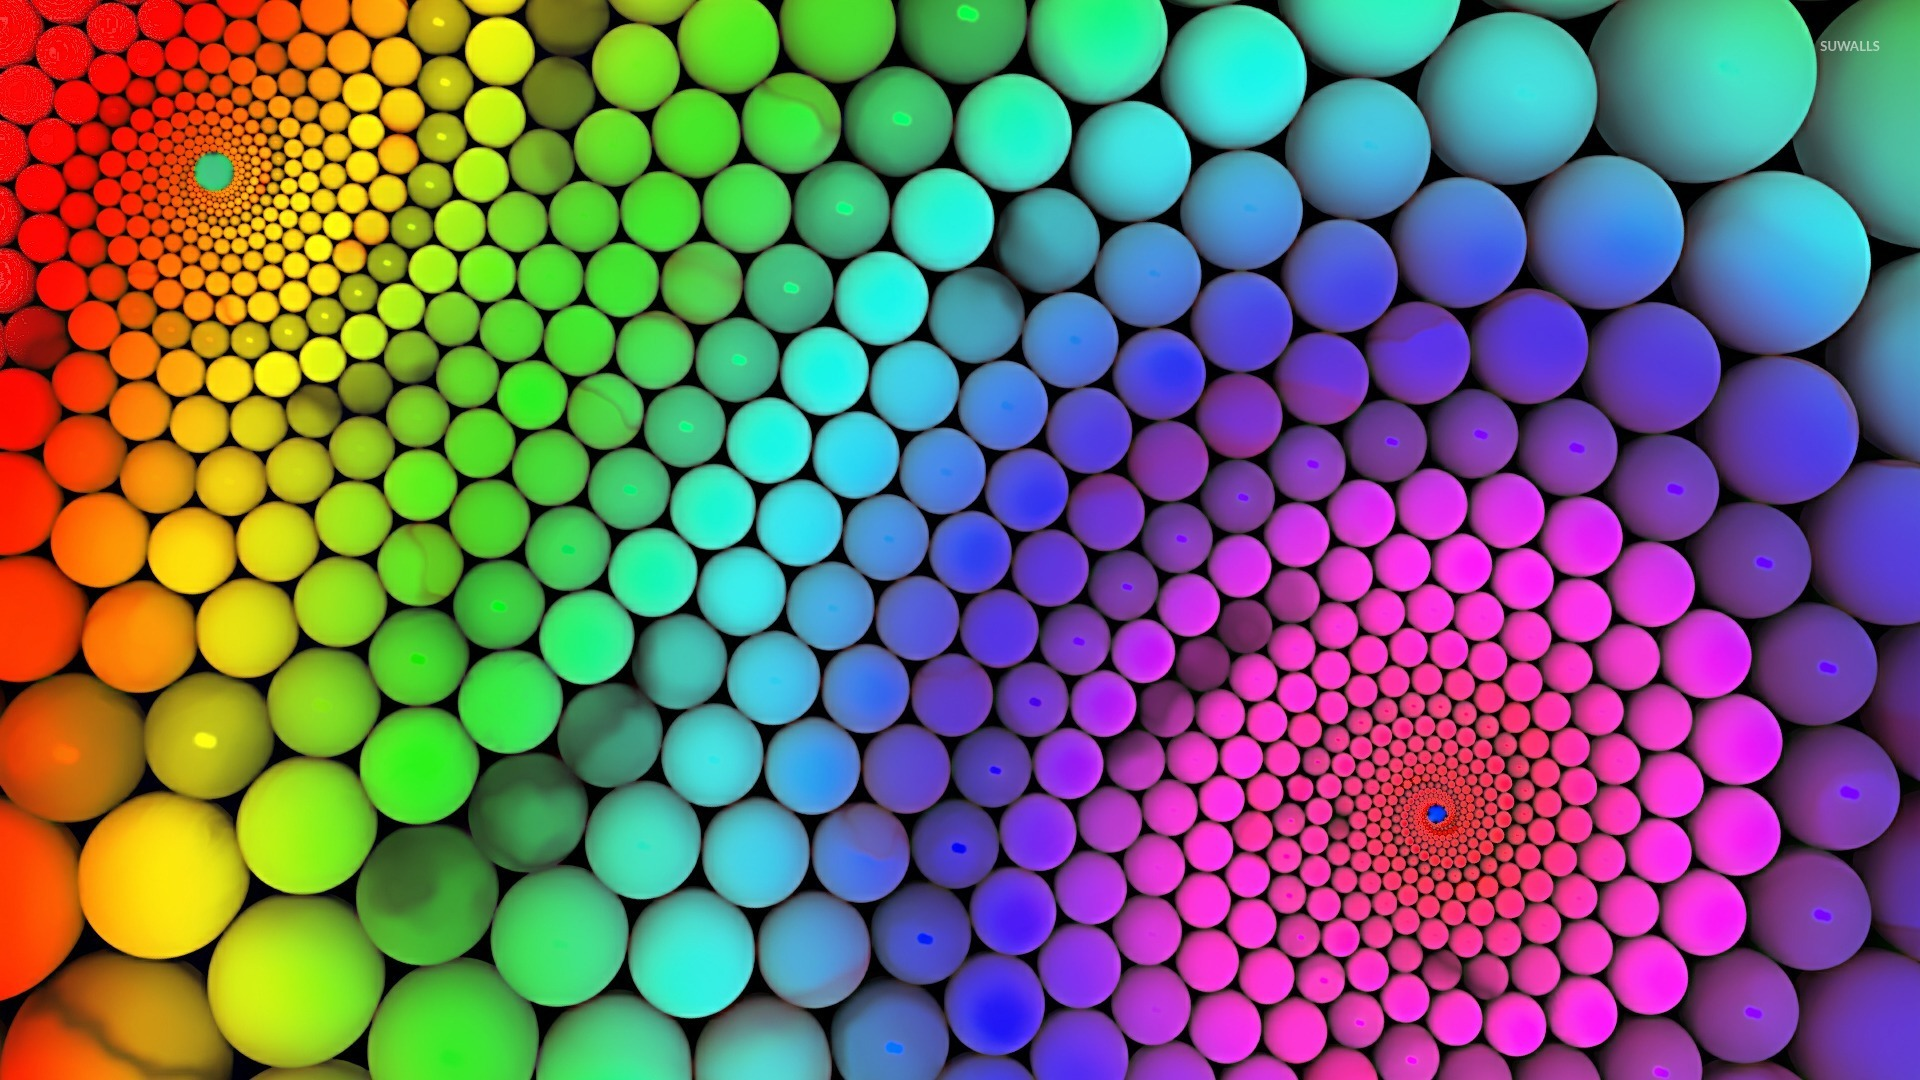 Optical Illusion Wallpaper 1920x1080